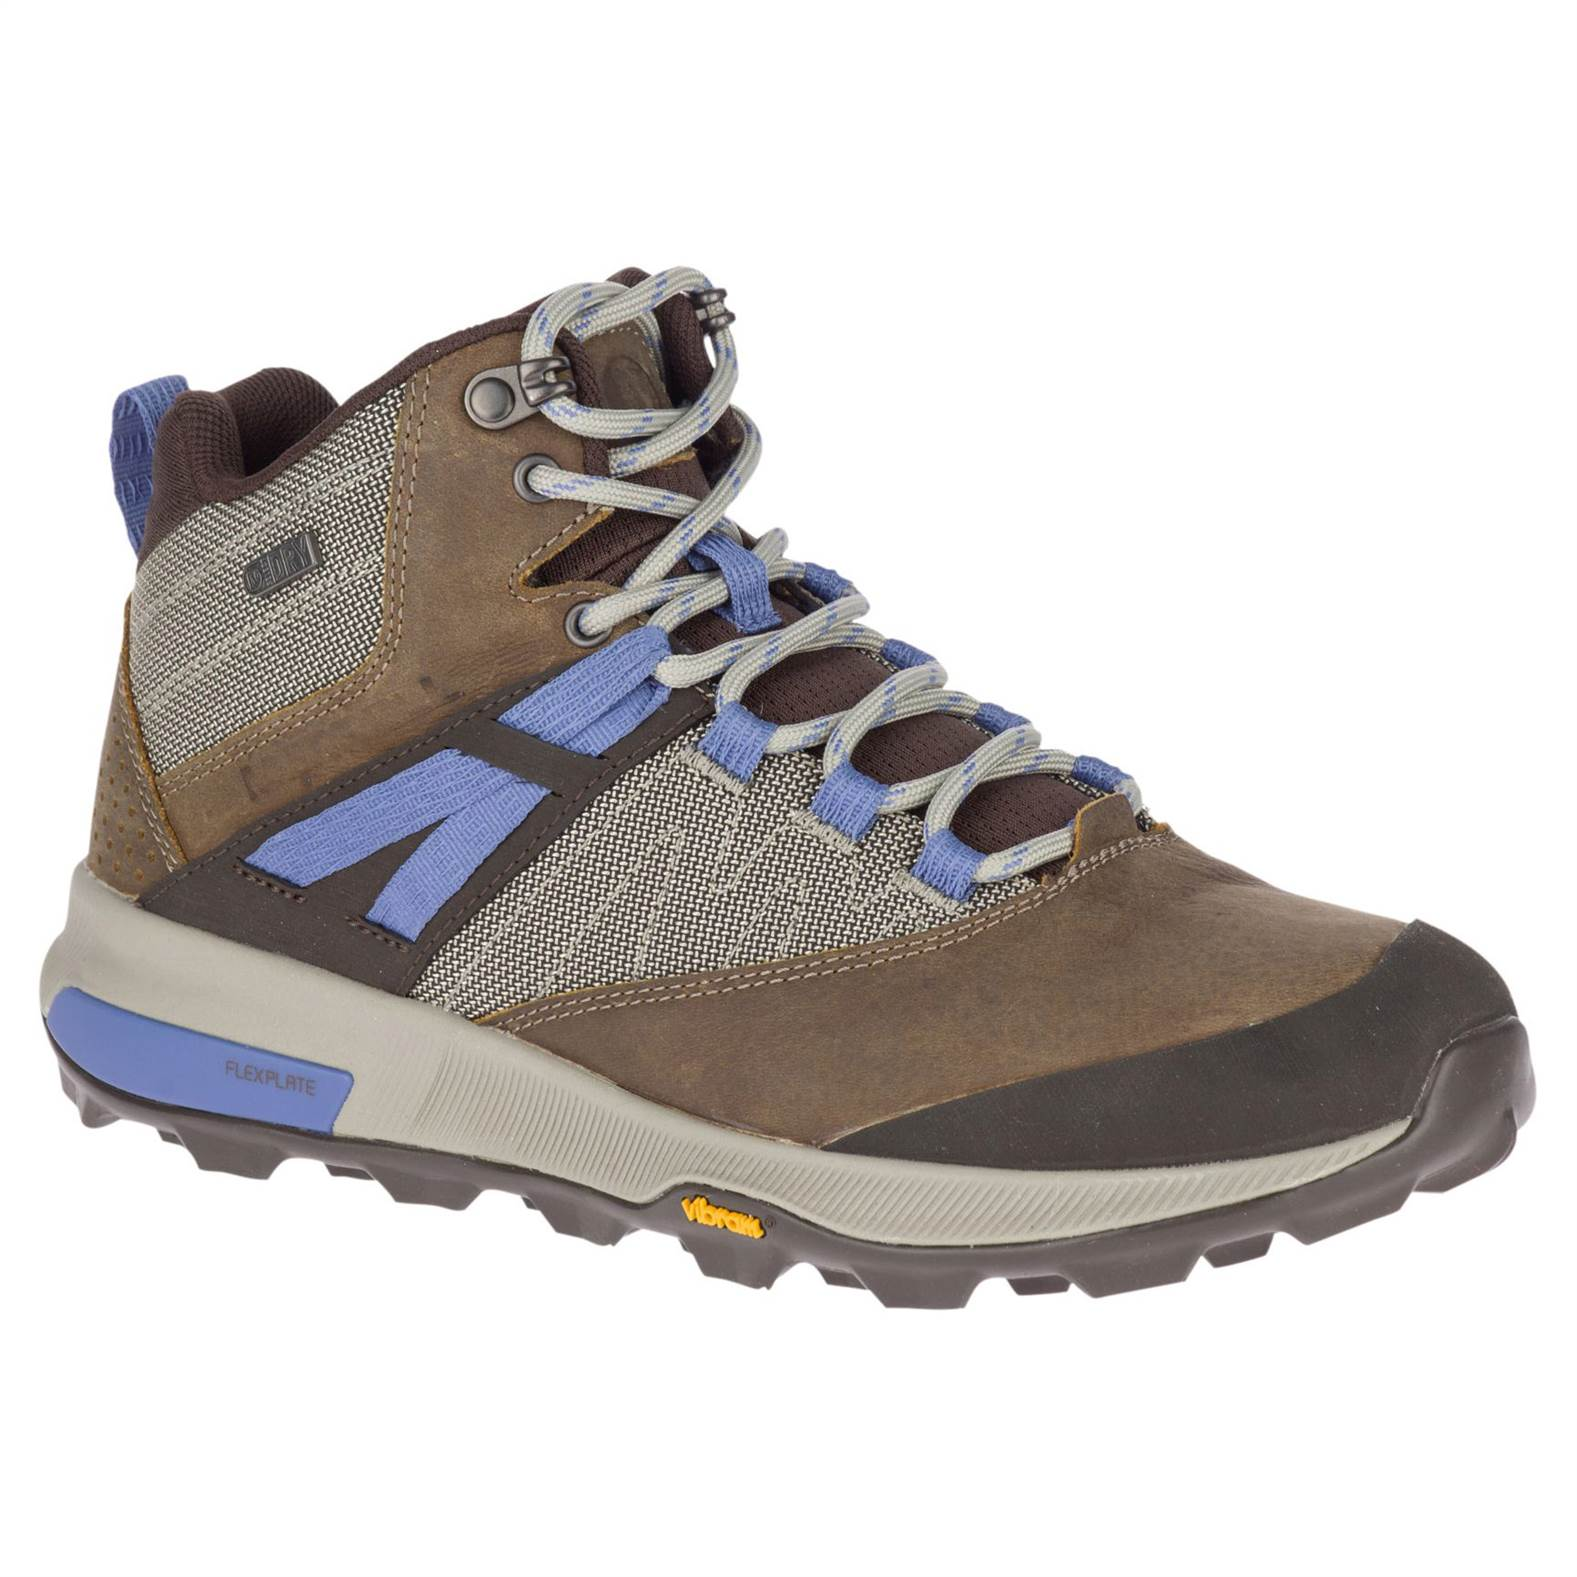 Zion Mid WP Boot - Women's